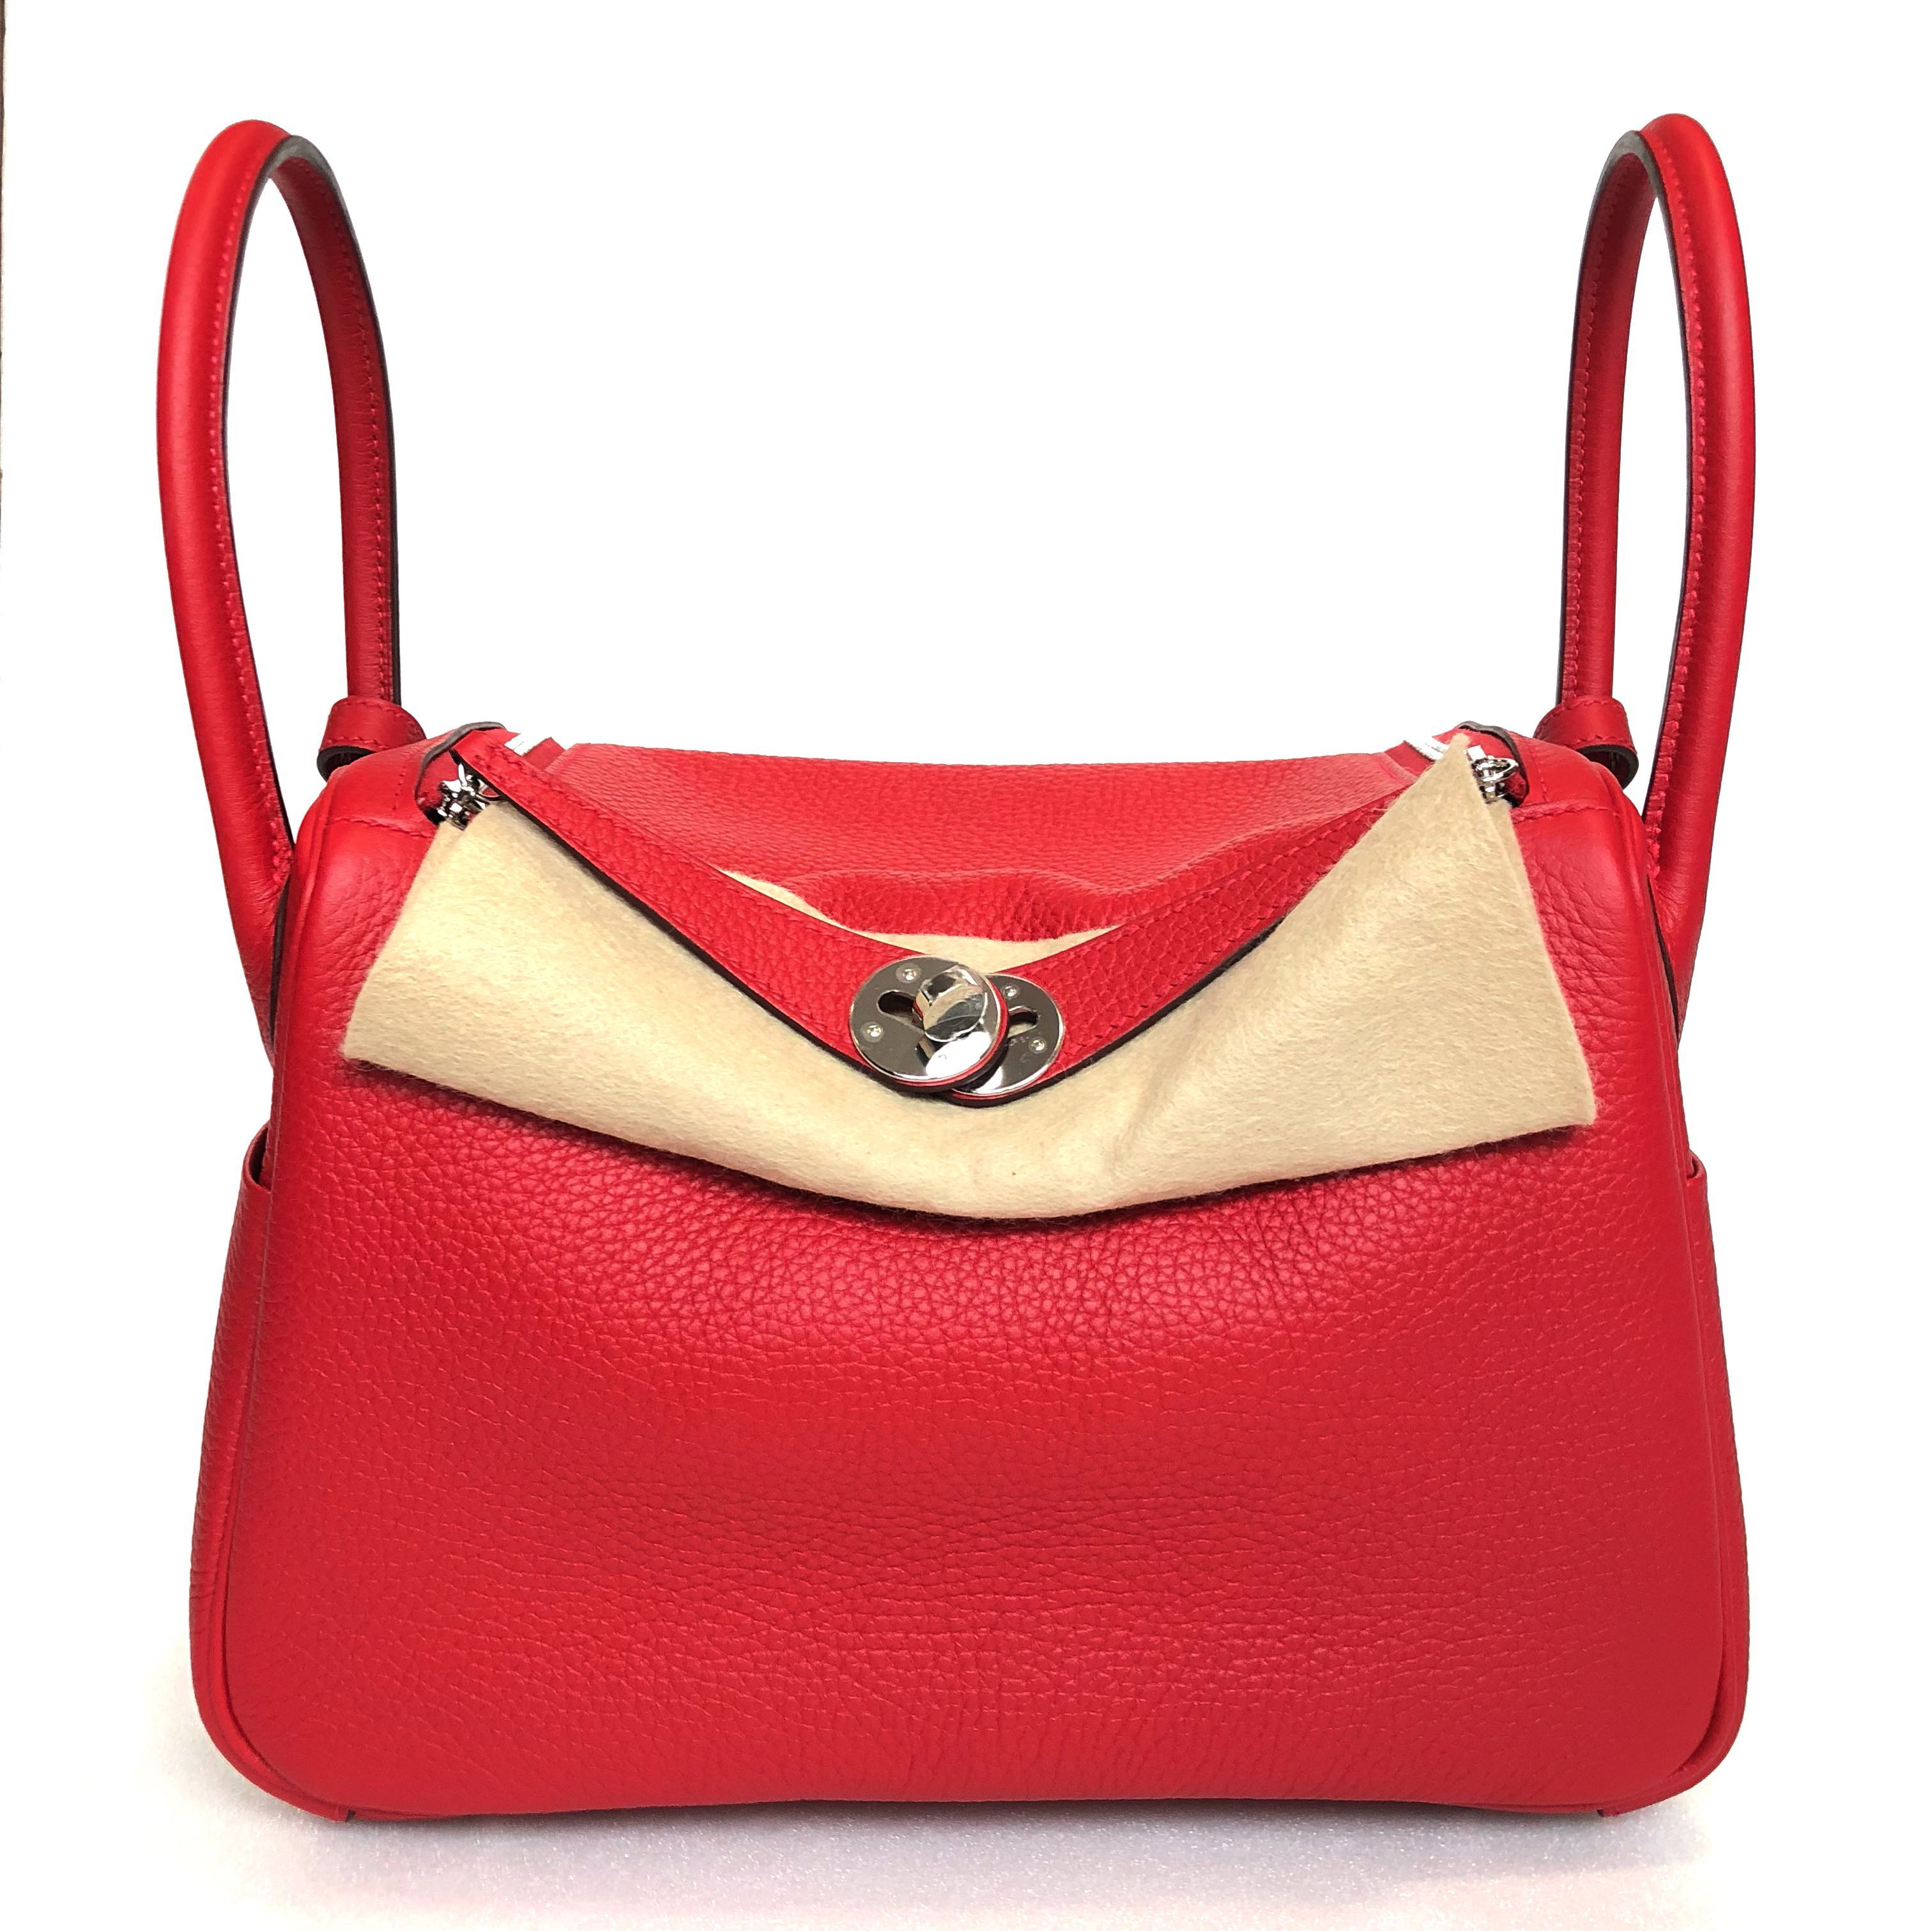 2d4d35ba34 Hermes - Rouge Casaque Lindy 26 in Taurillon Clémence with PHW ...